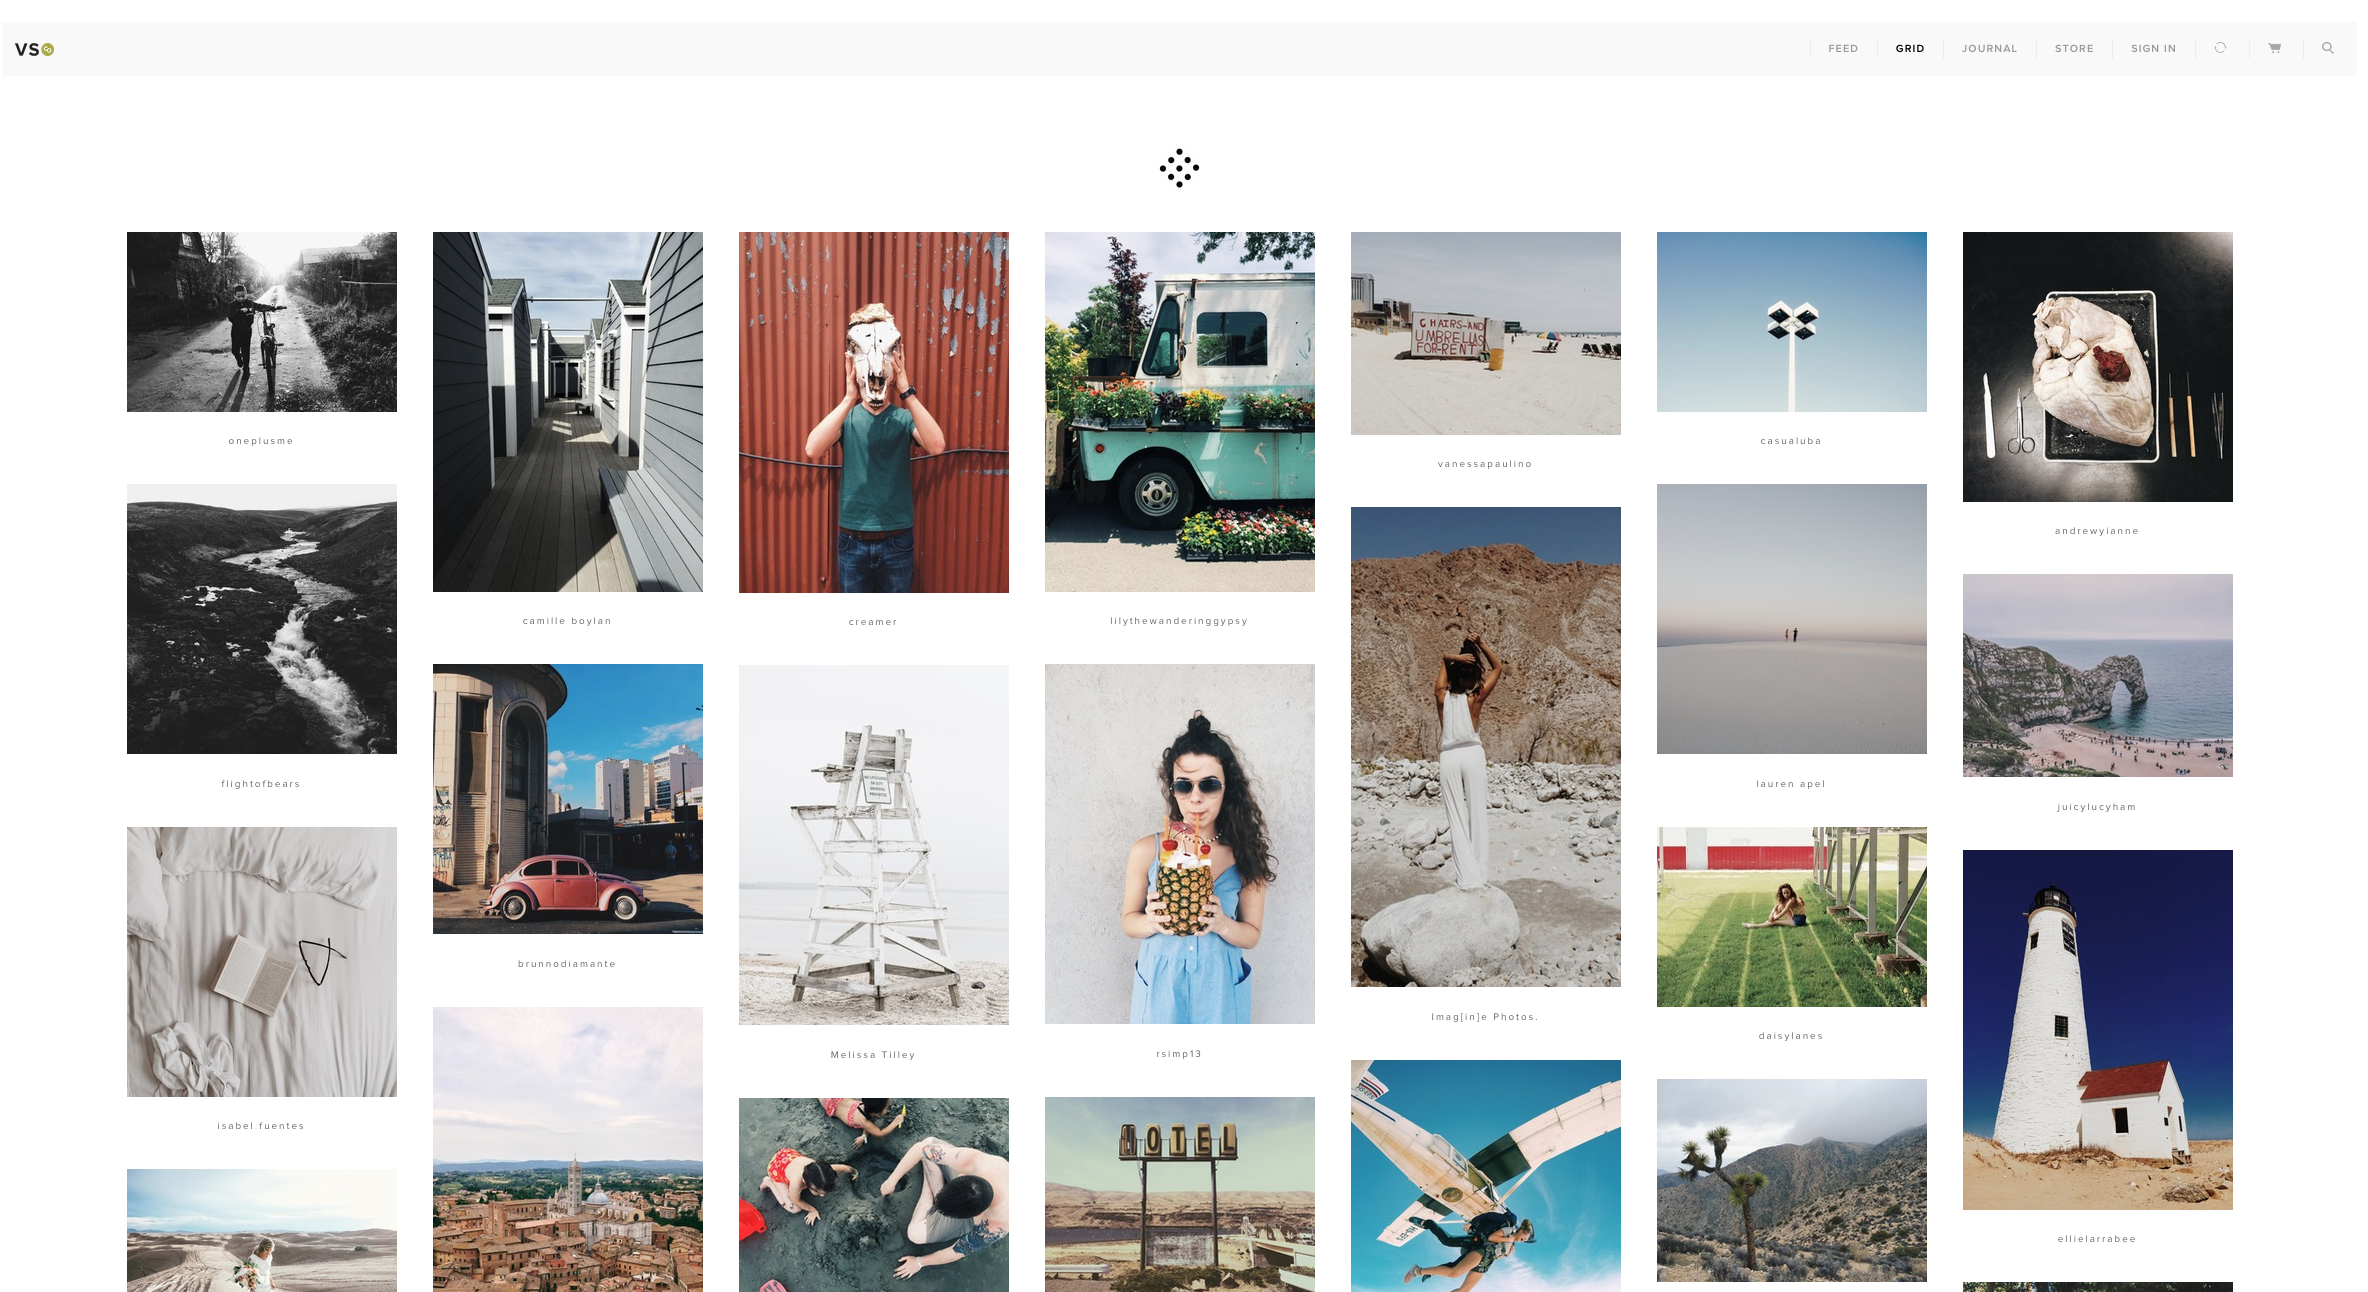 VSCO Featured Images!